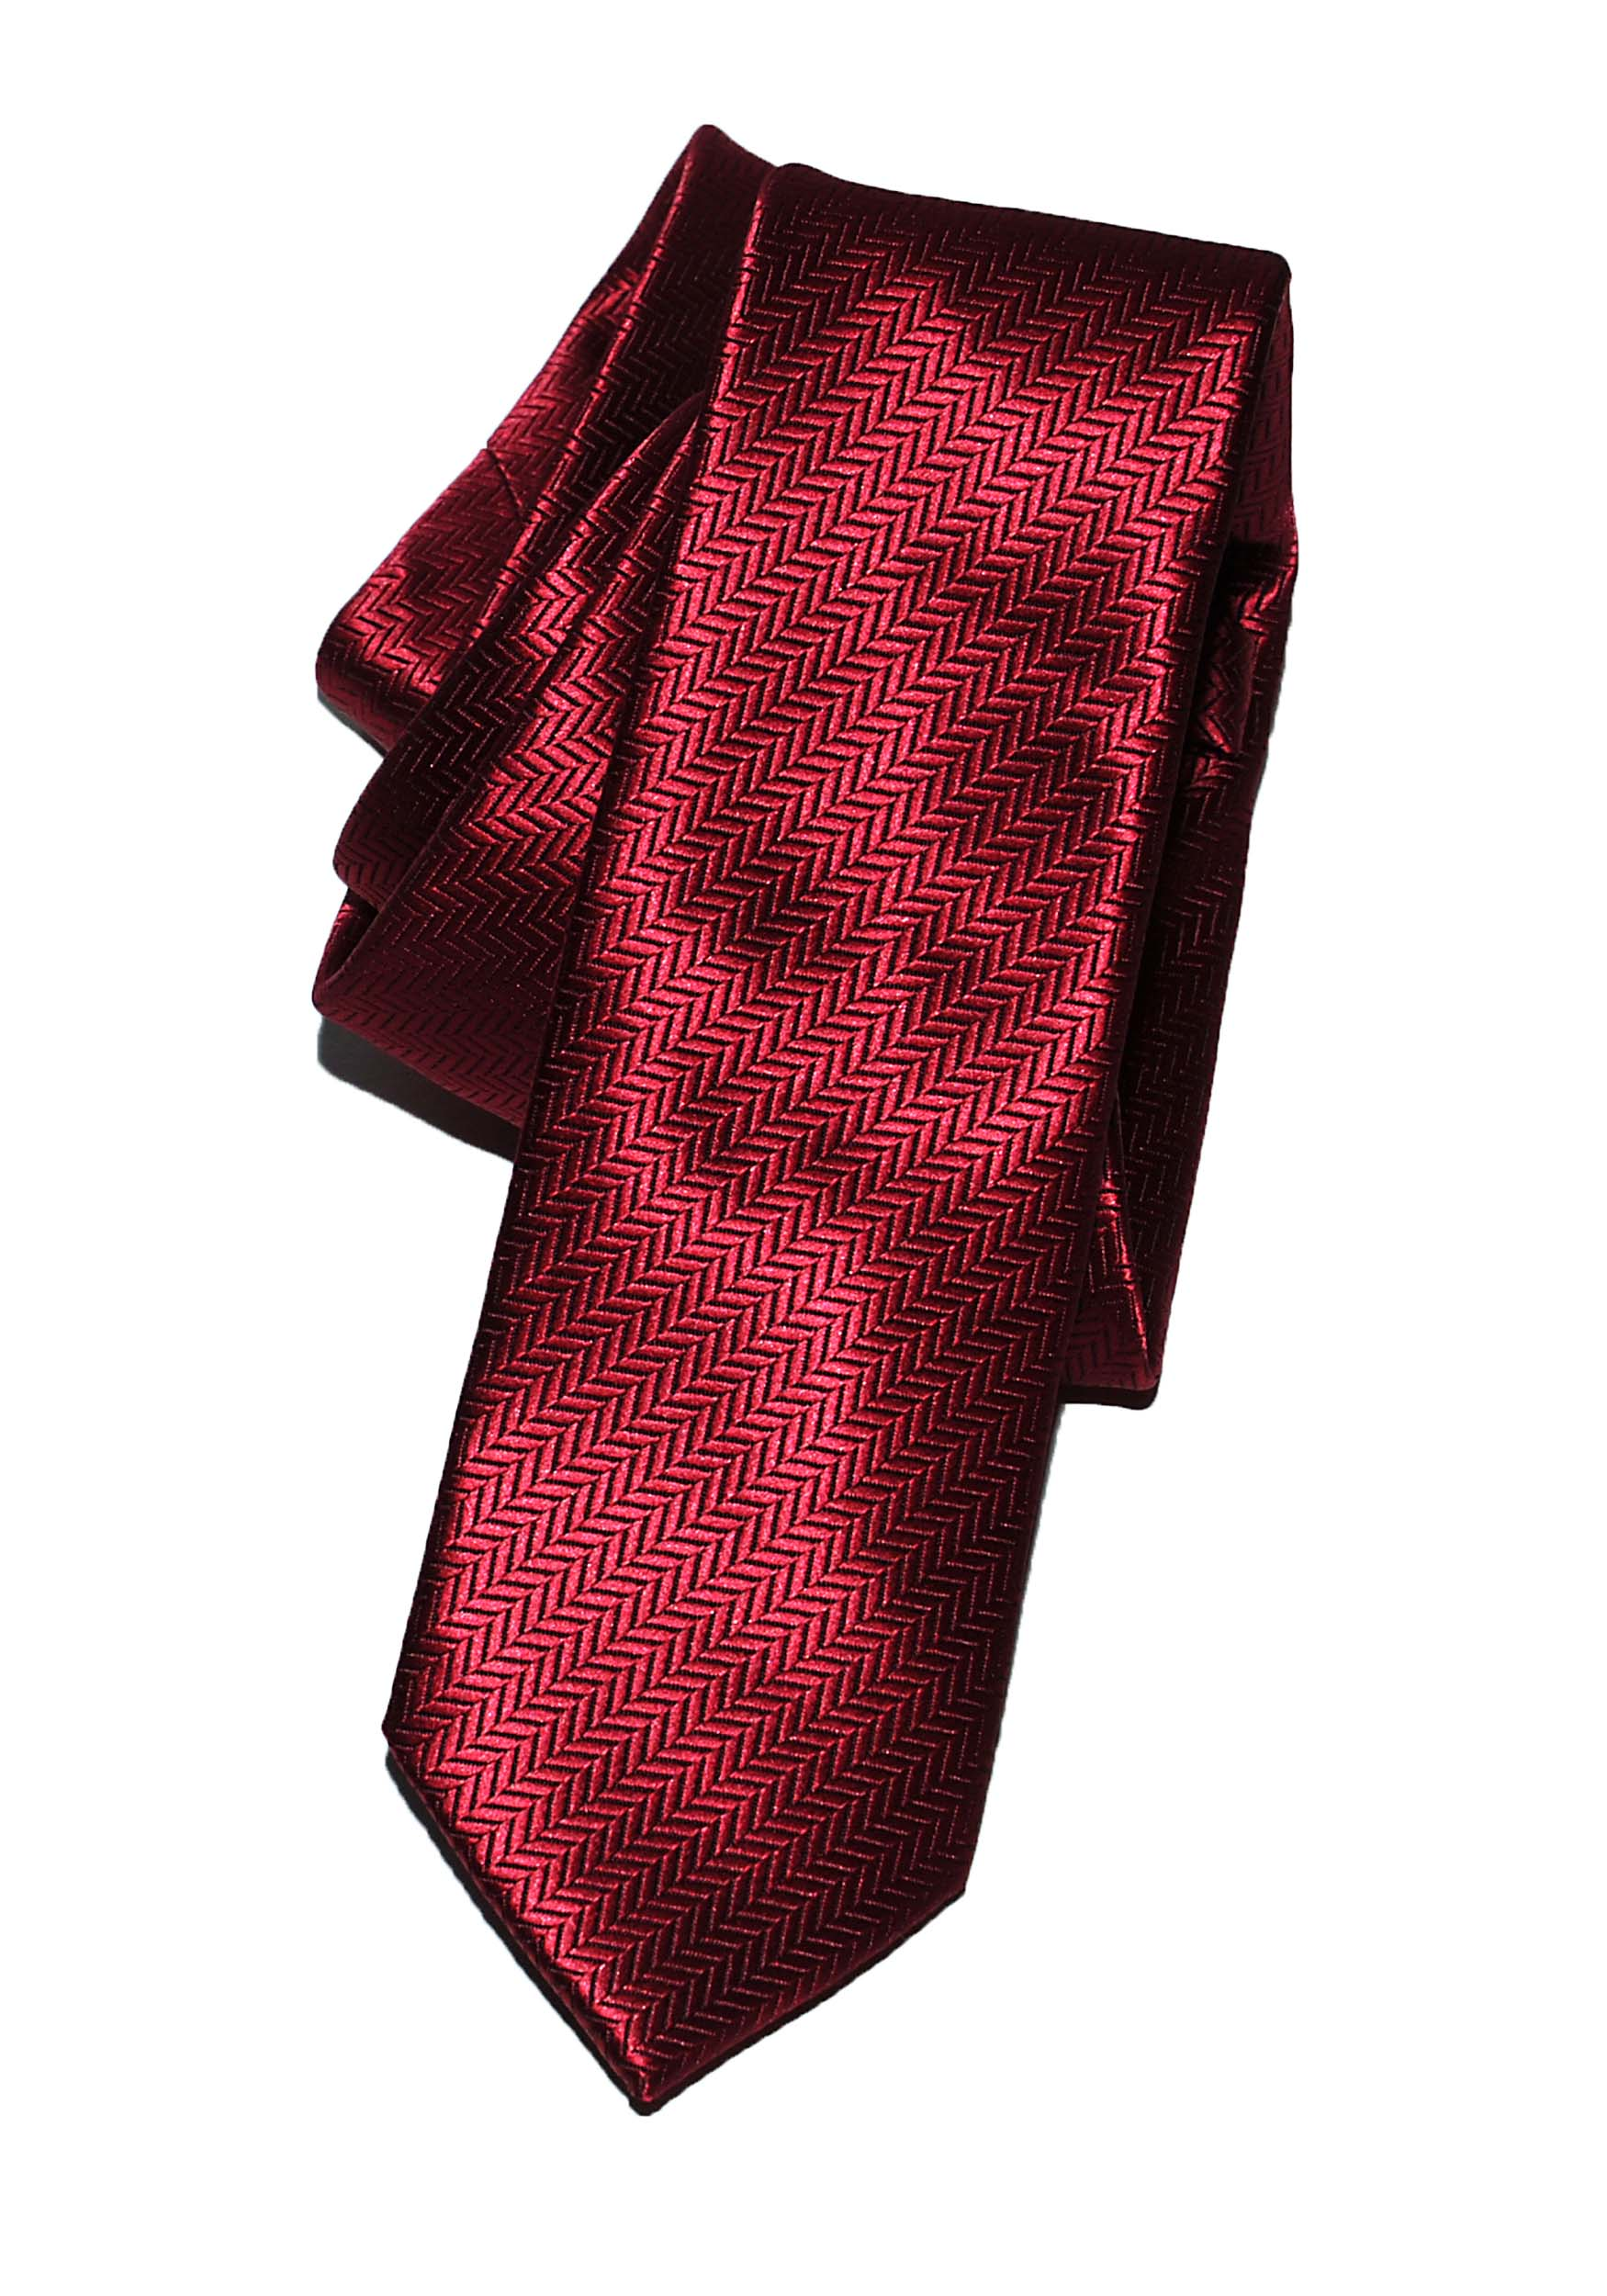 Remus Uomo Red Narrow Tie - N4223 Remus Uomo Jeans - 7clothing Cardiff